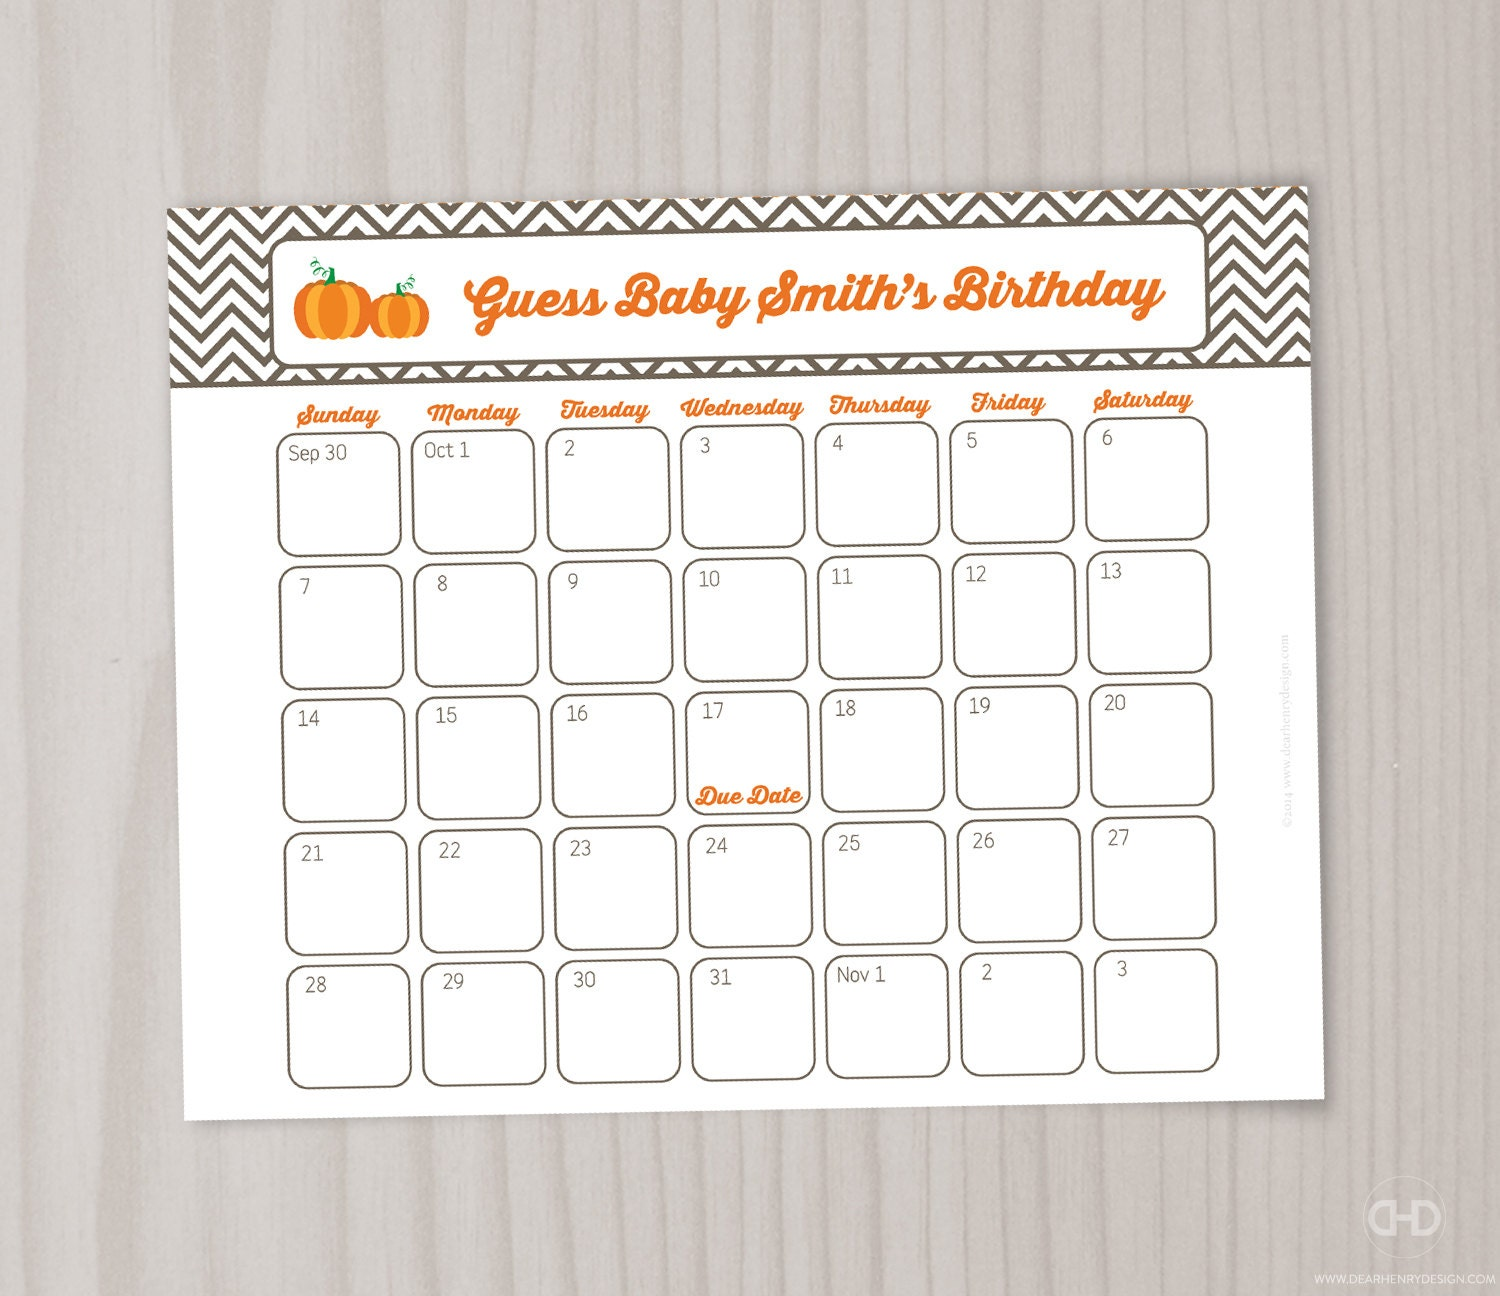 Guess The Birth Date Baby Shower Game: Little Pumpkin Guess Baby's Birthday Due Date Calendar